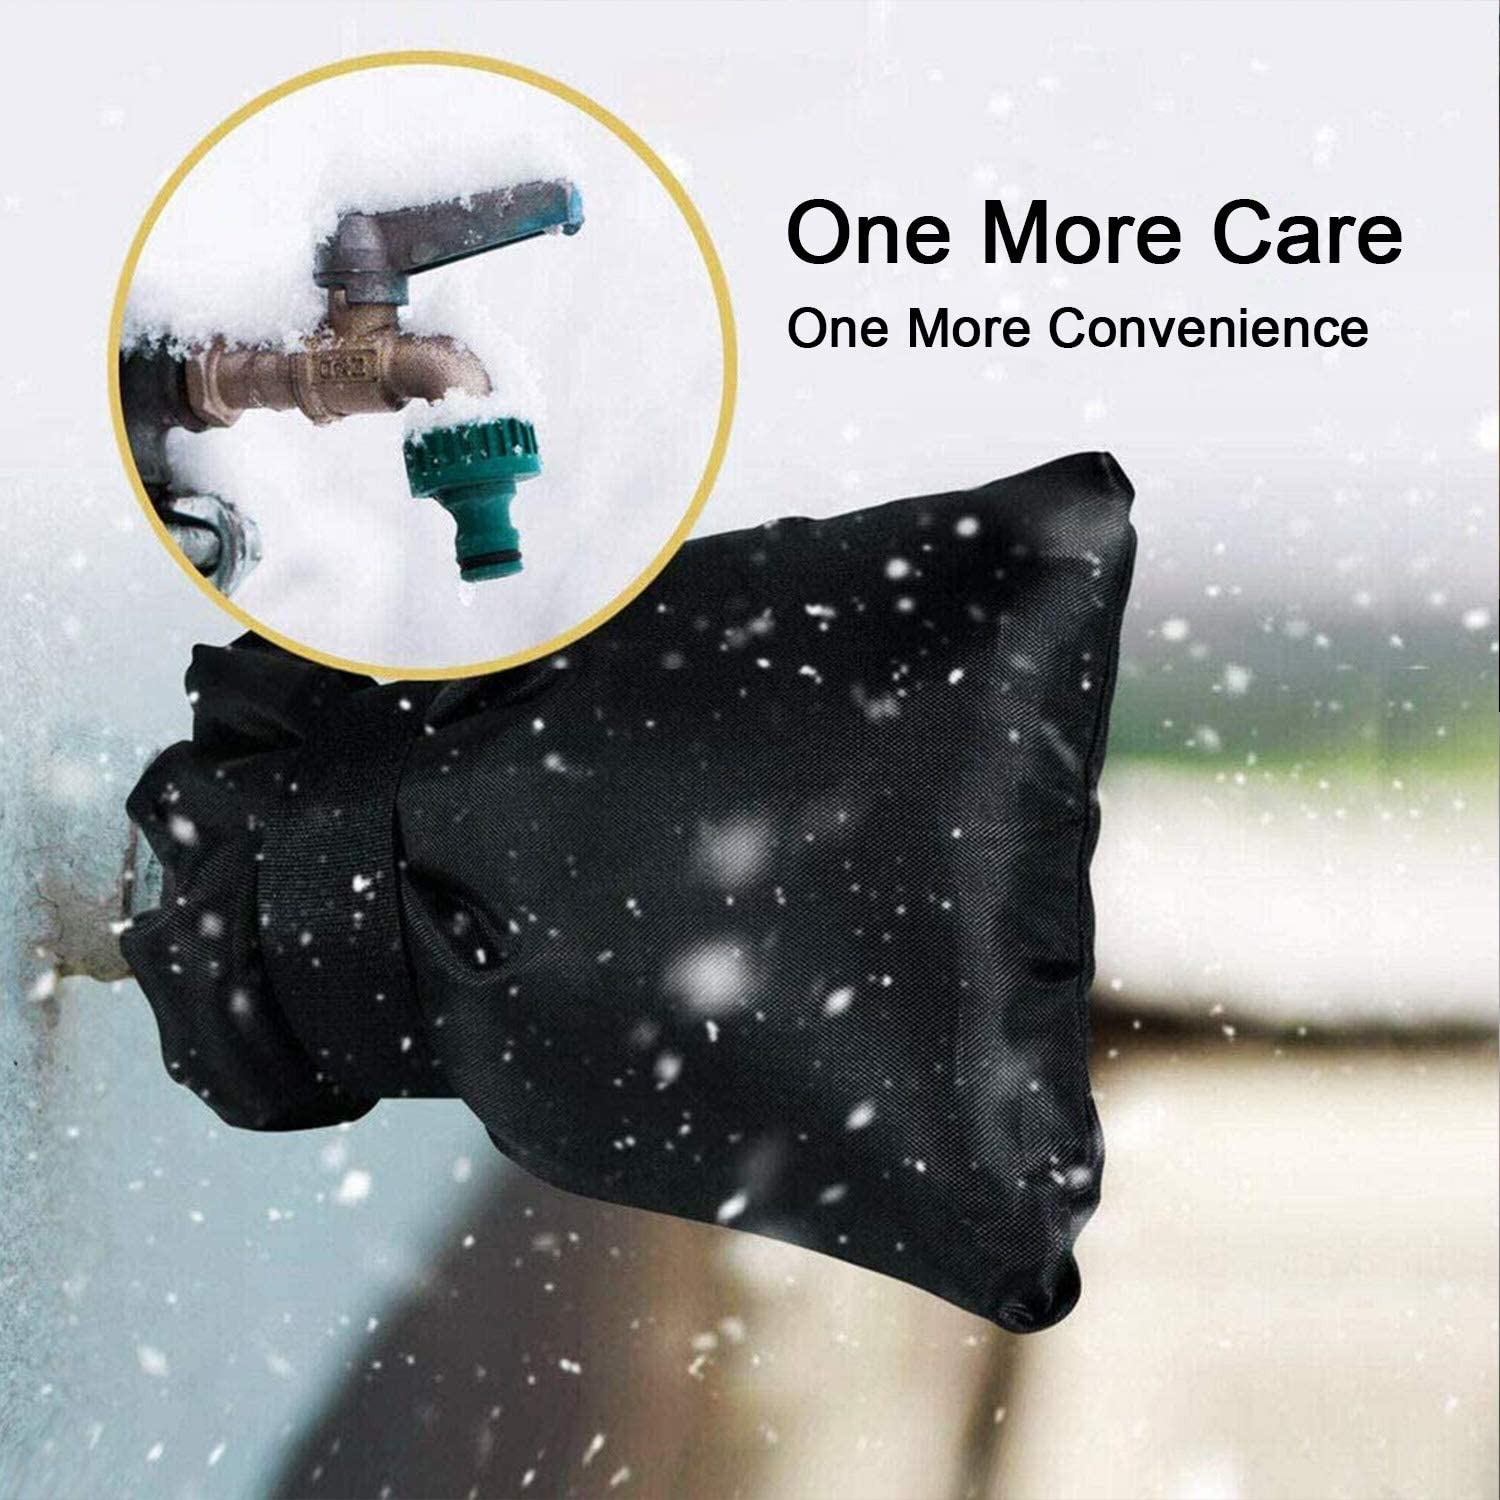 Garden Outdoor Faucet Cover 4 Pack Faucet Covers for Winter Outdoor Faucet Covers for Winter Freeze Protection Black Outside Faucet Covers for Cold Weather Hose Bib Covers for Winter